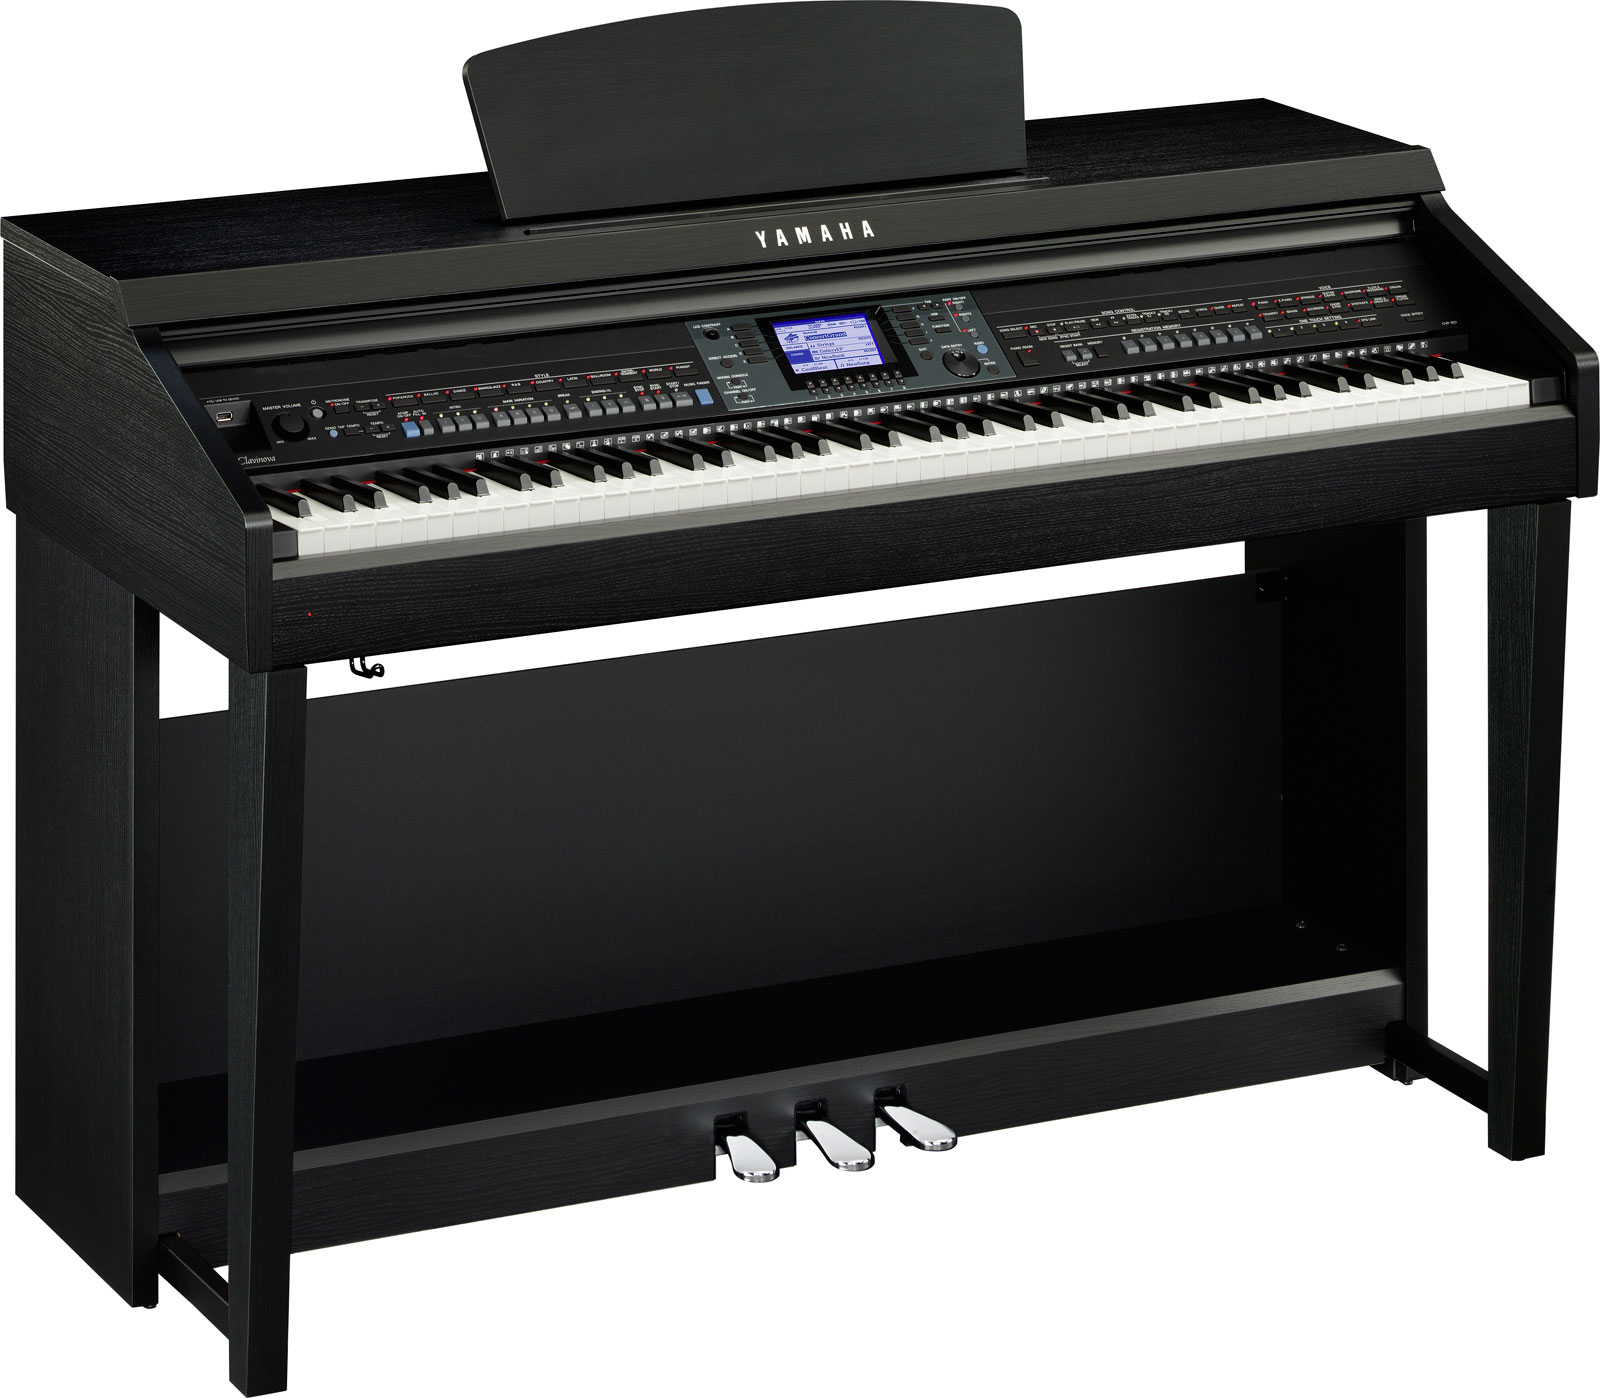 Yamaha Clavinova 601b Digital Piano in Black Walnut